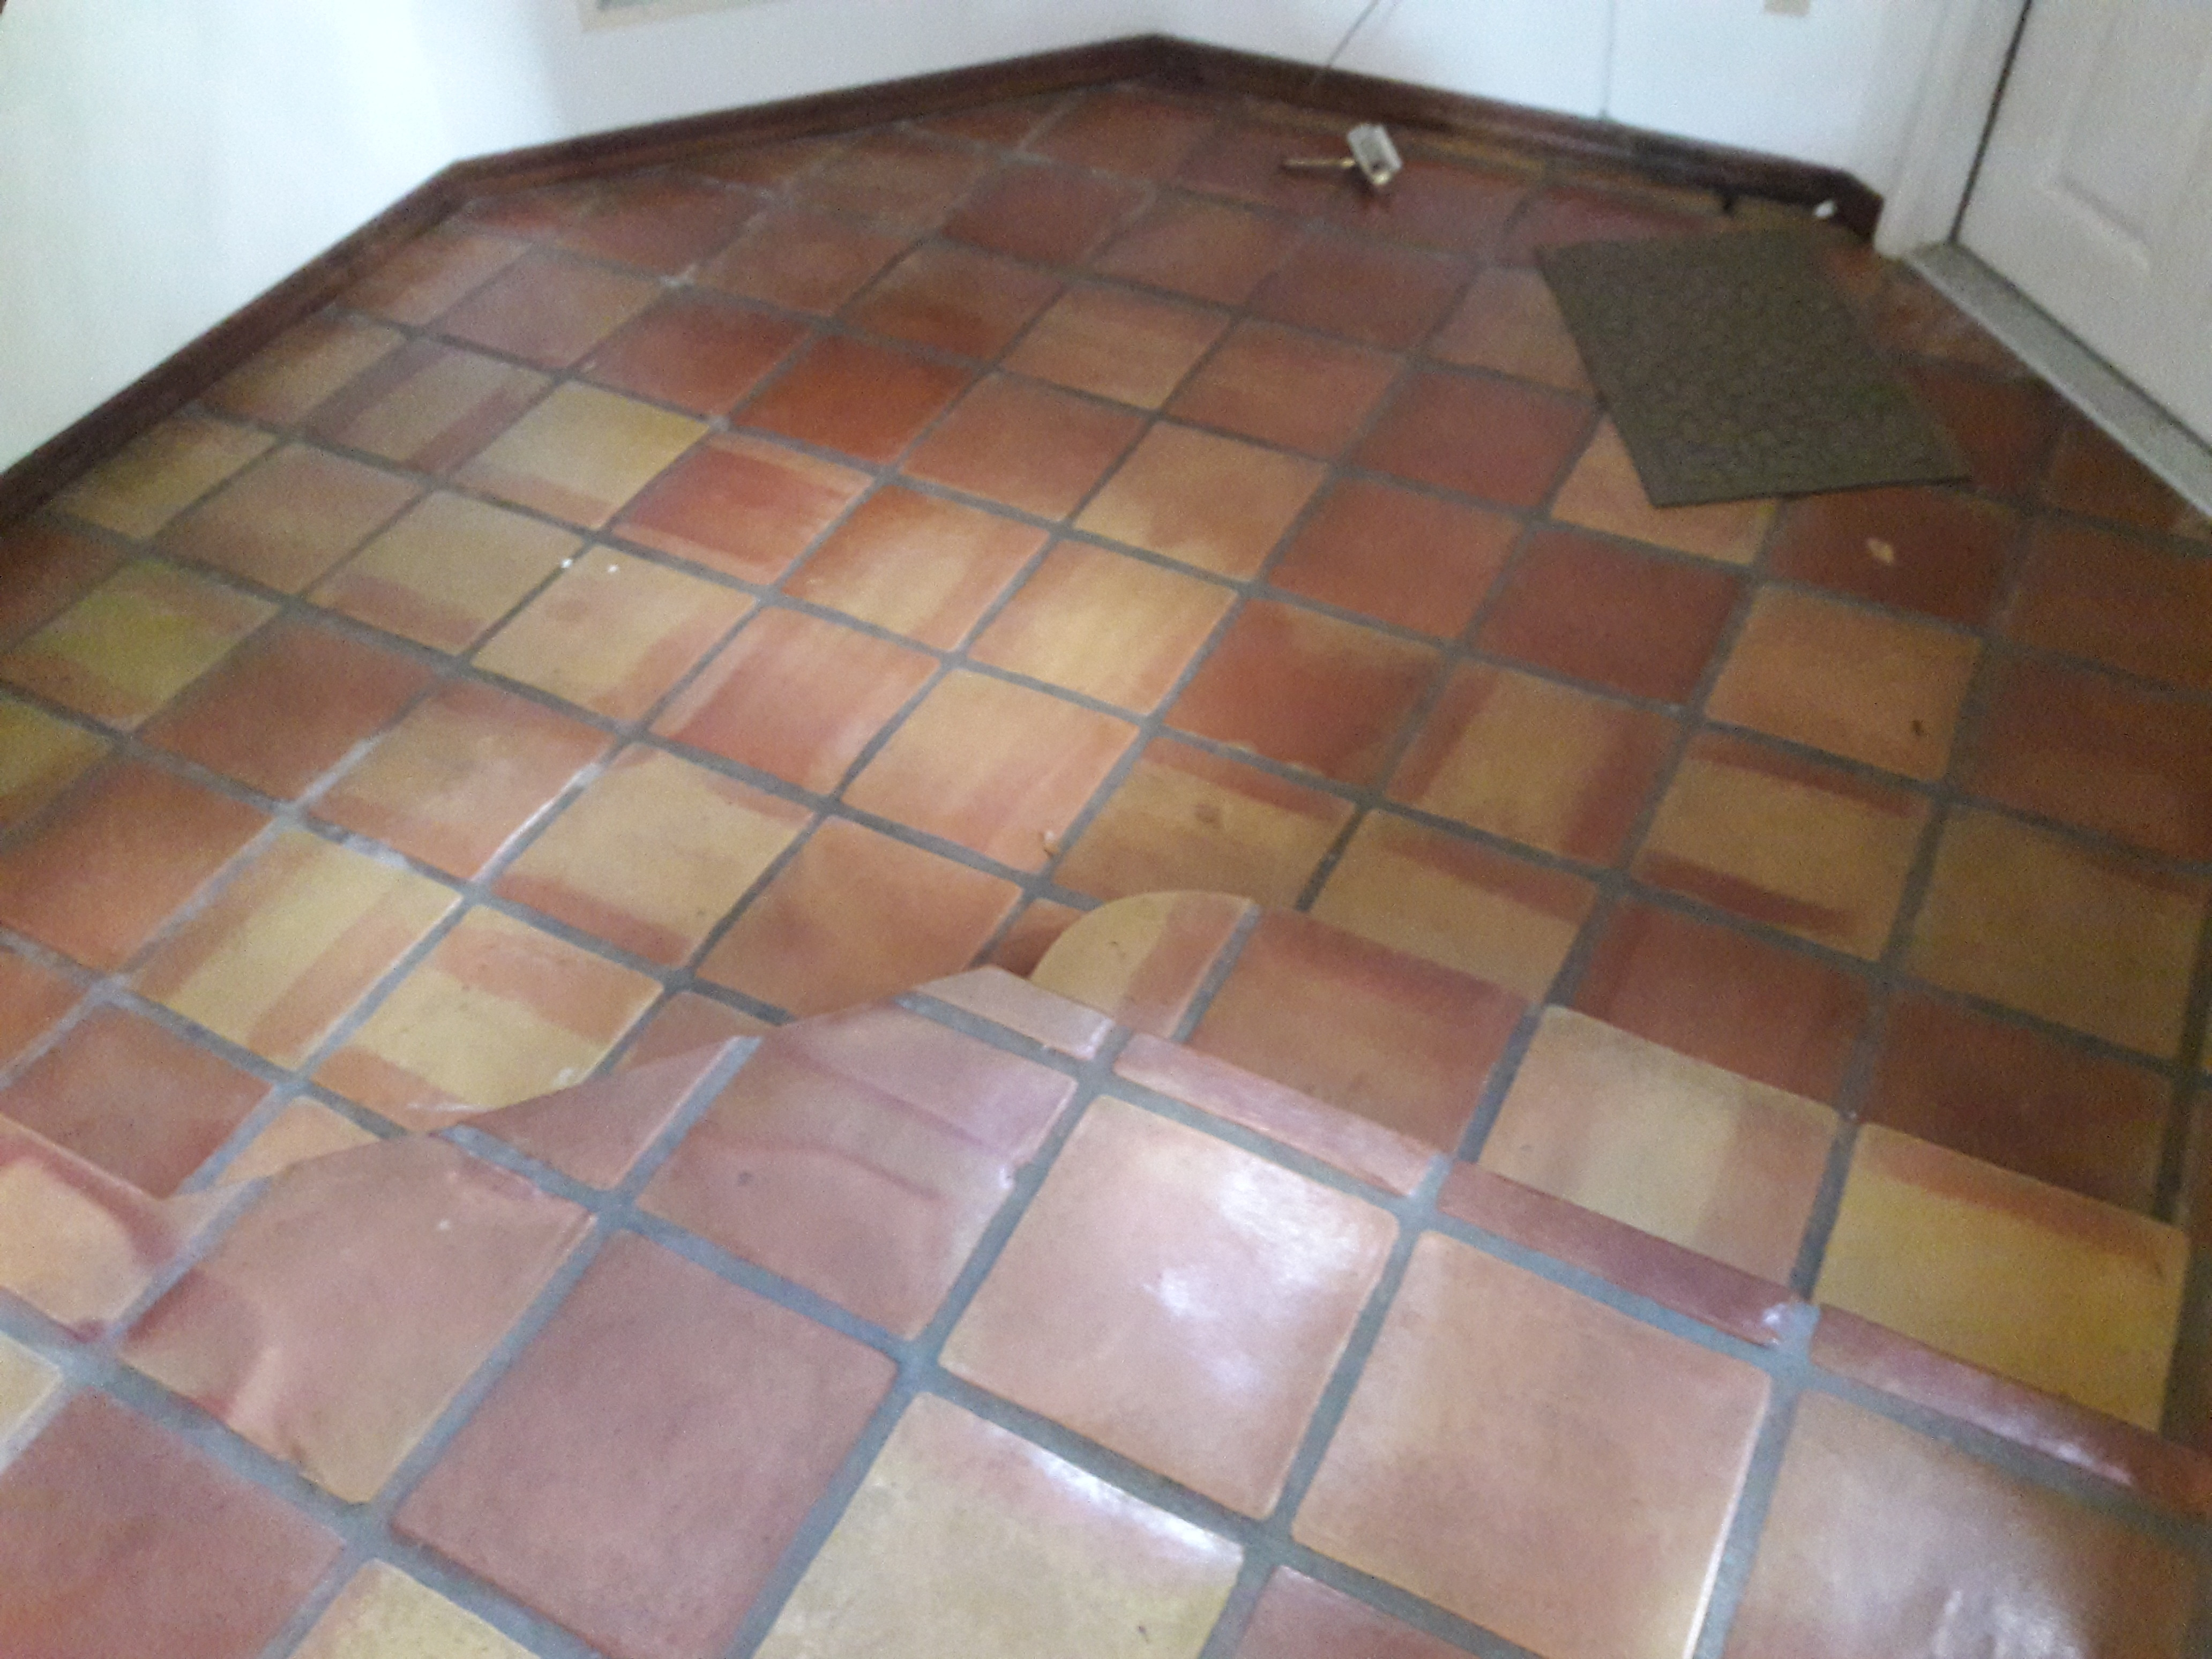 South Florida Clay tile Removal in South Florida